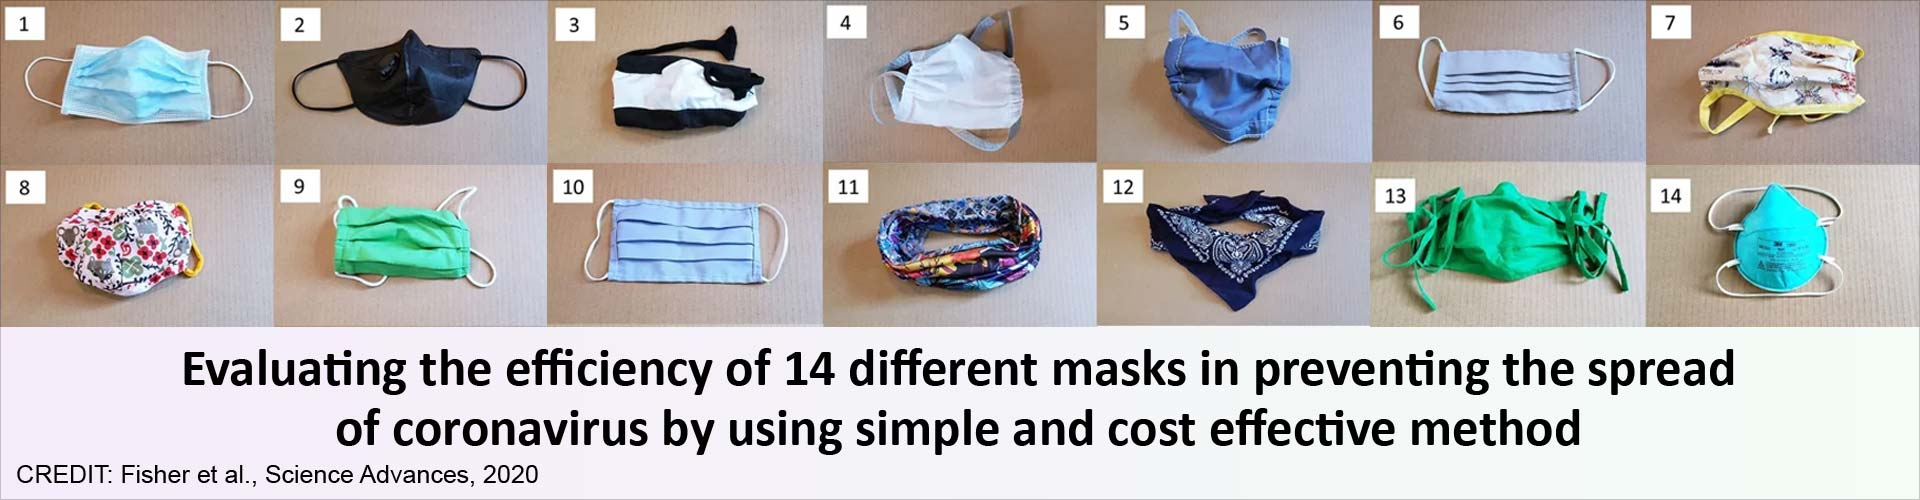 Efficiency of Different Masks in Protecting People Against COVID-19